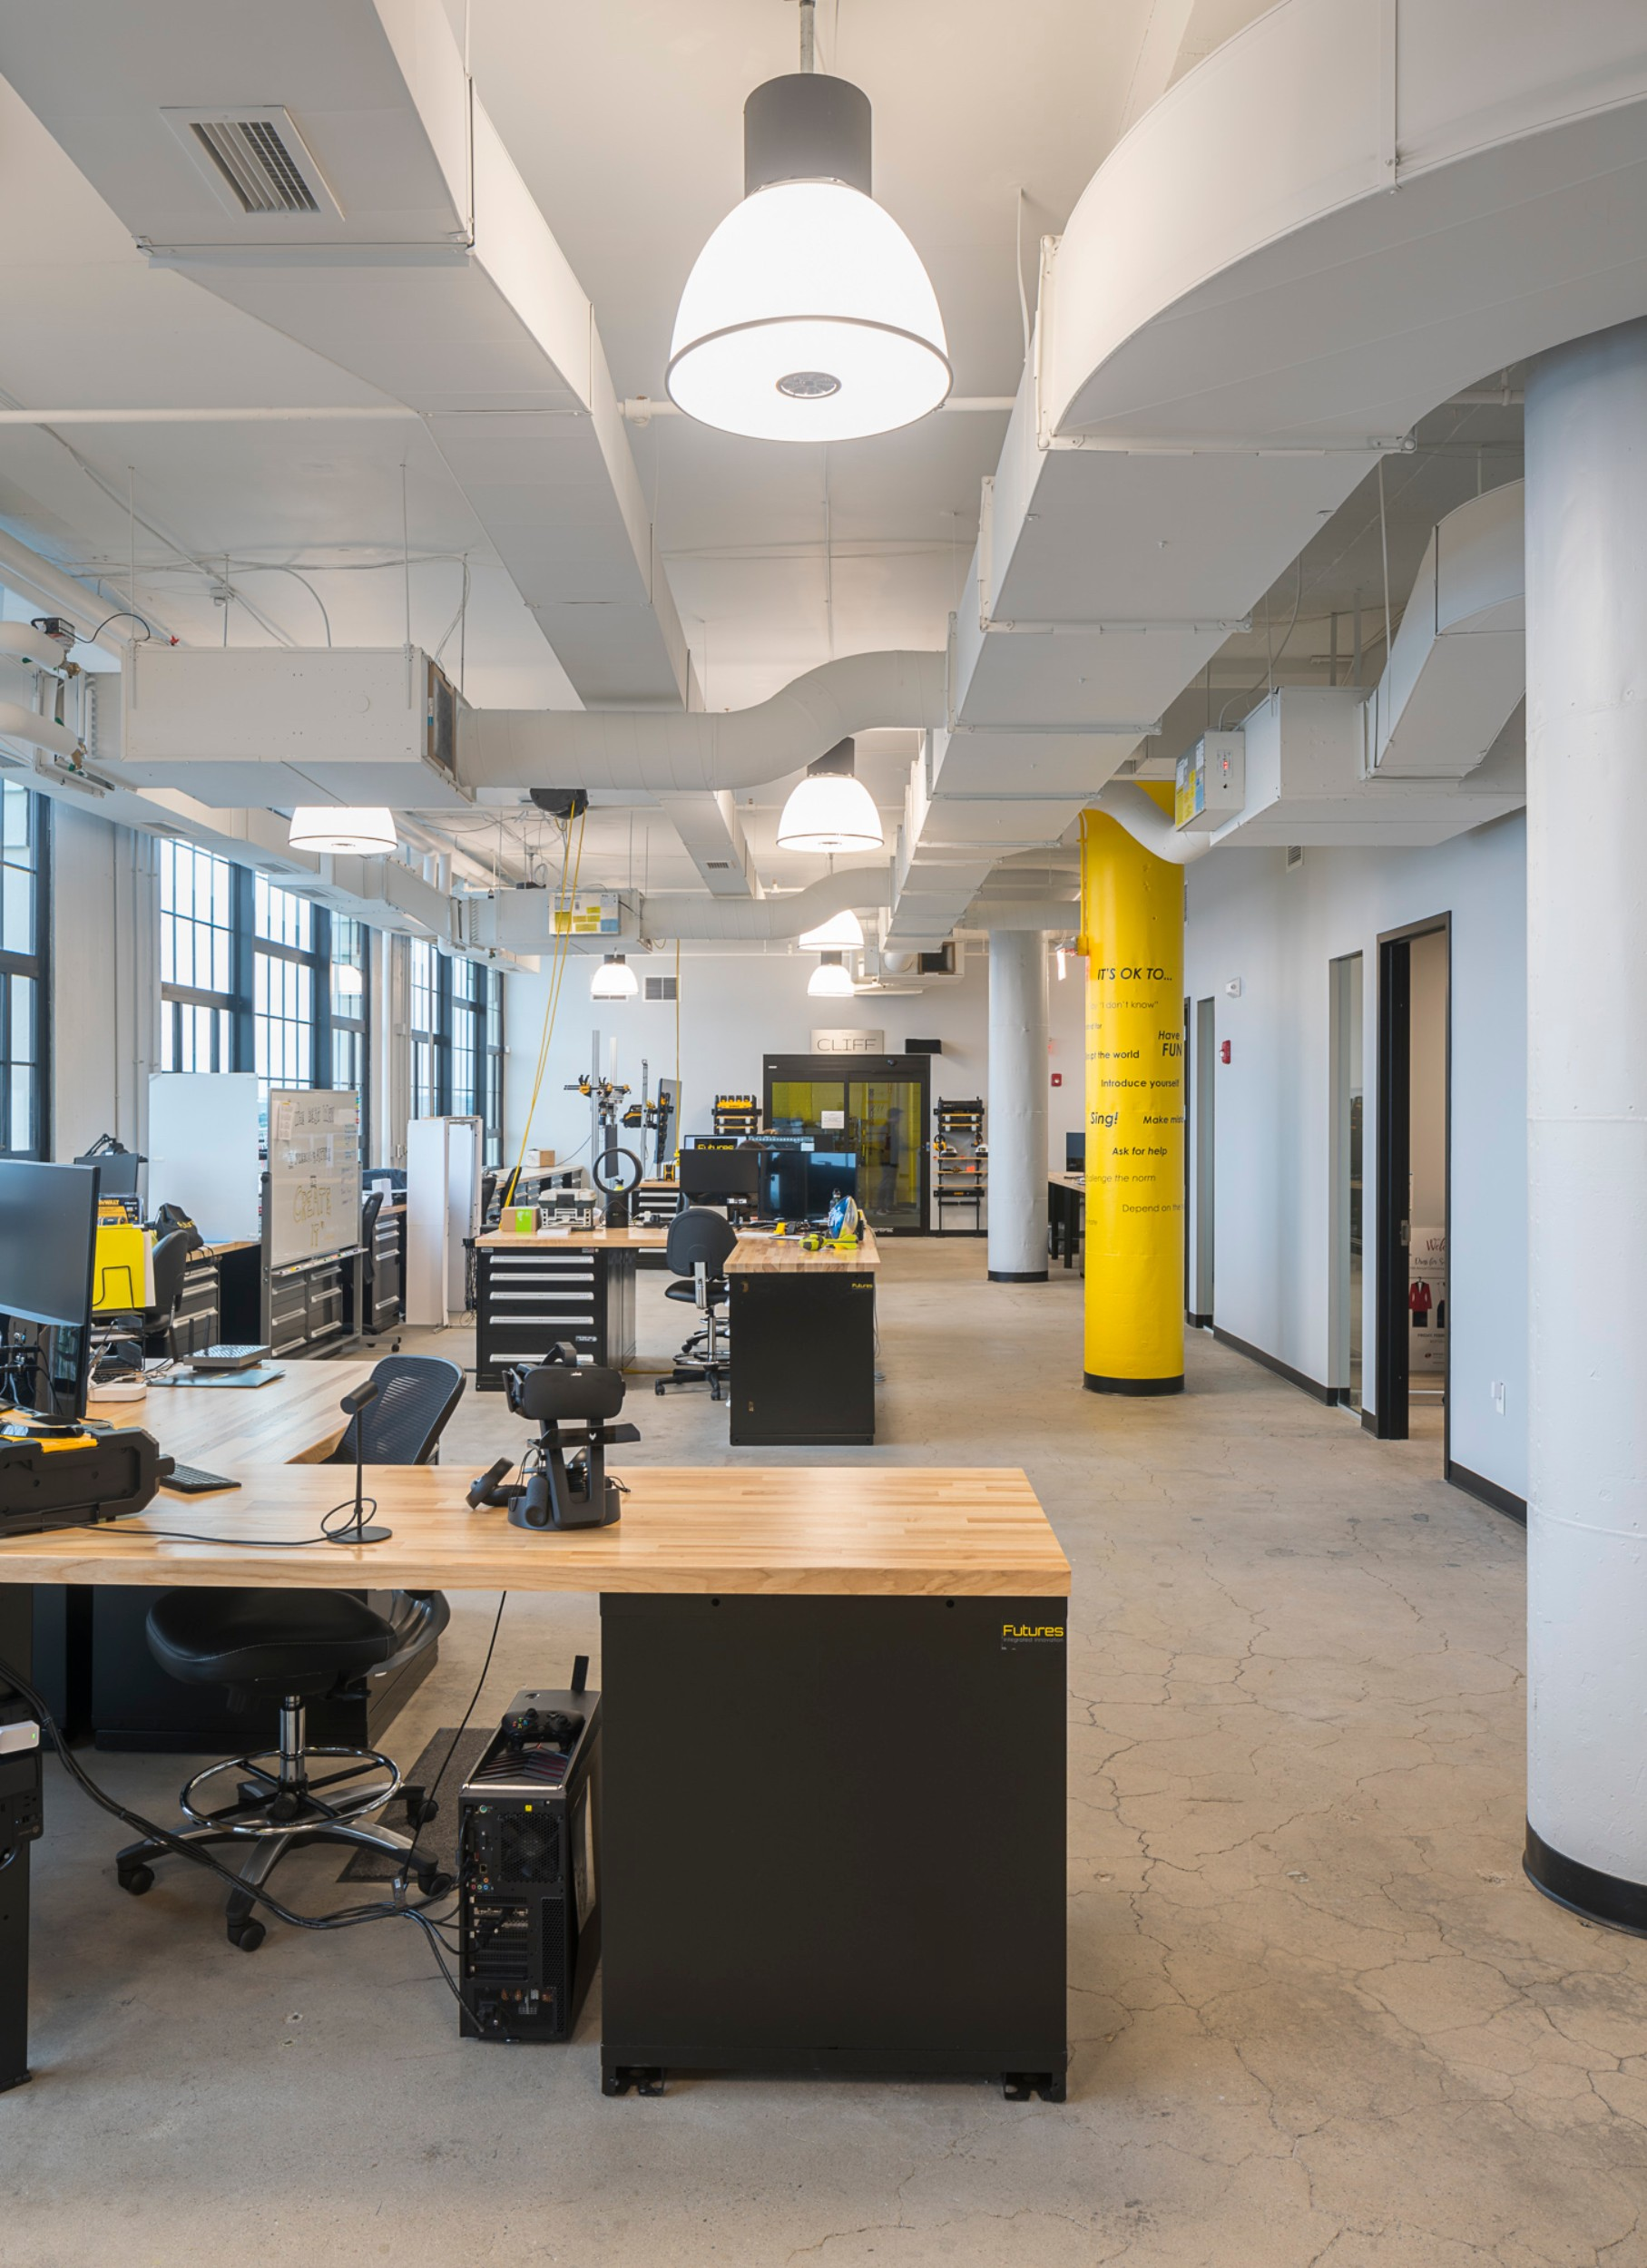 Stanley_Black_Decker_Corderman_Construction_Open_Area_Work_Stations_Vertical_Columns_Boston_Seaport.jpg